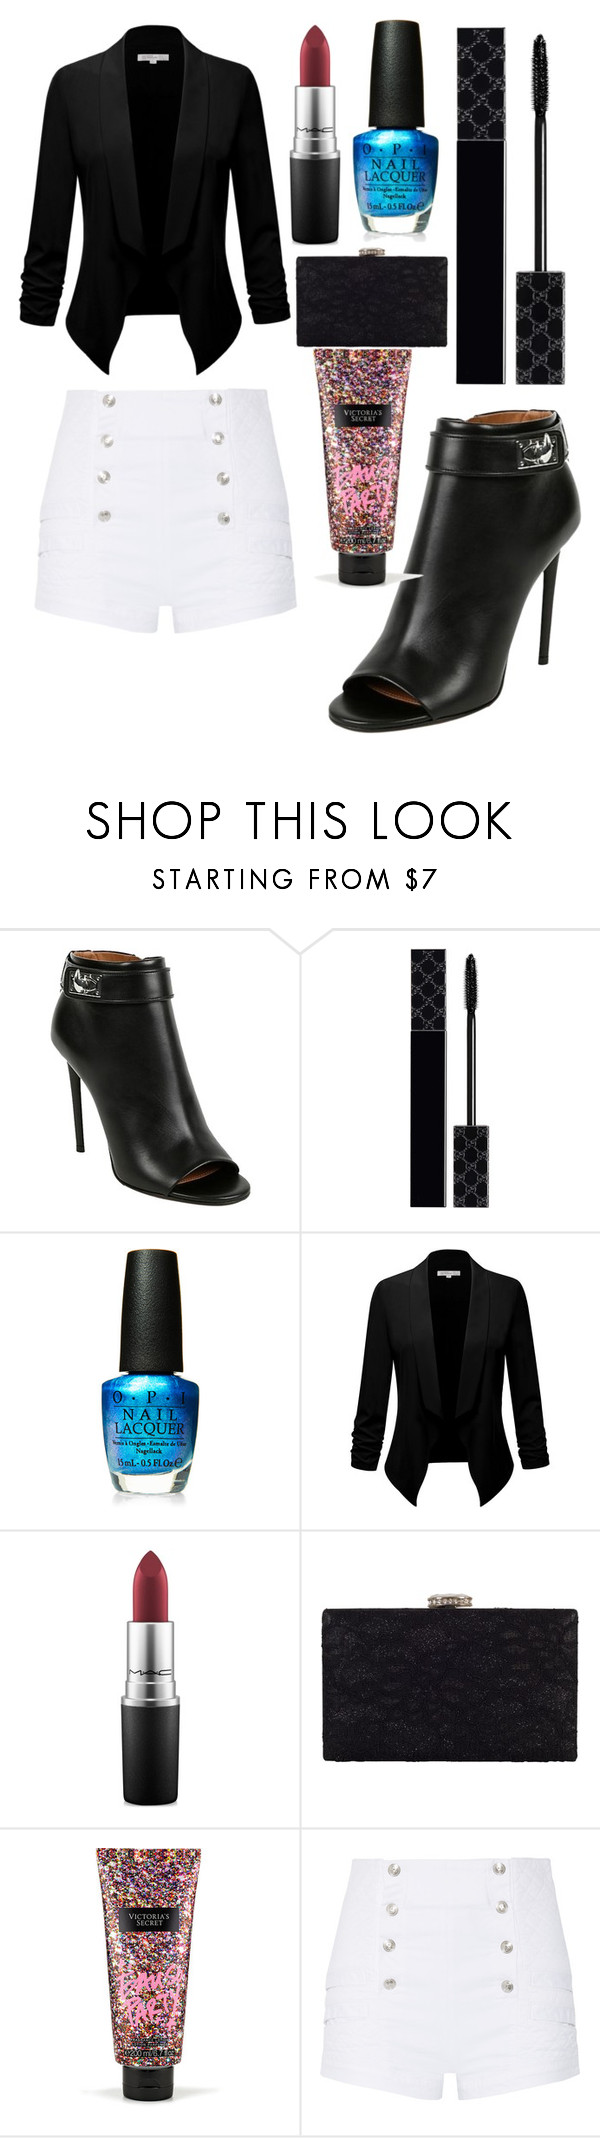 """Untitled #9581"" by ohnadine ❤ liked on Polyvore featuring Givenchy, Gucci, OPI, MAC Cosmetics, Chesca, Victoria's Secret and Pierre Balmain"